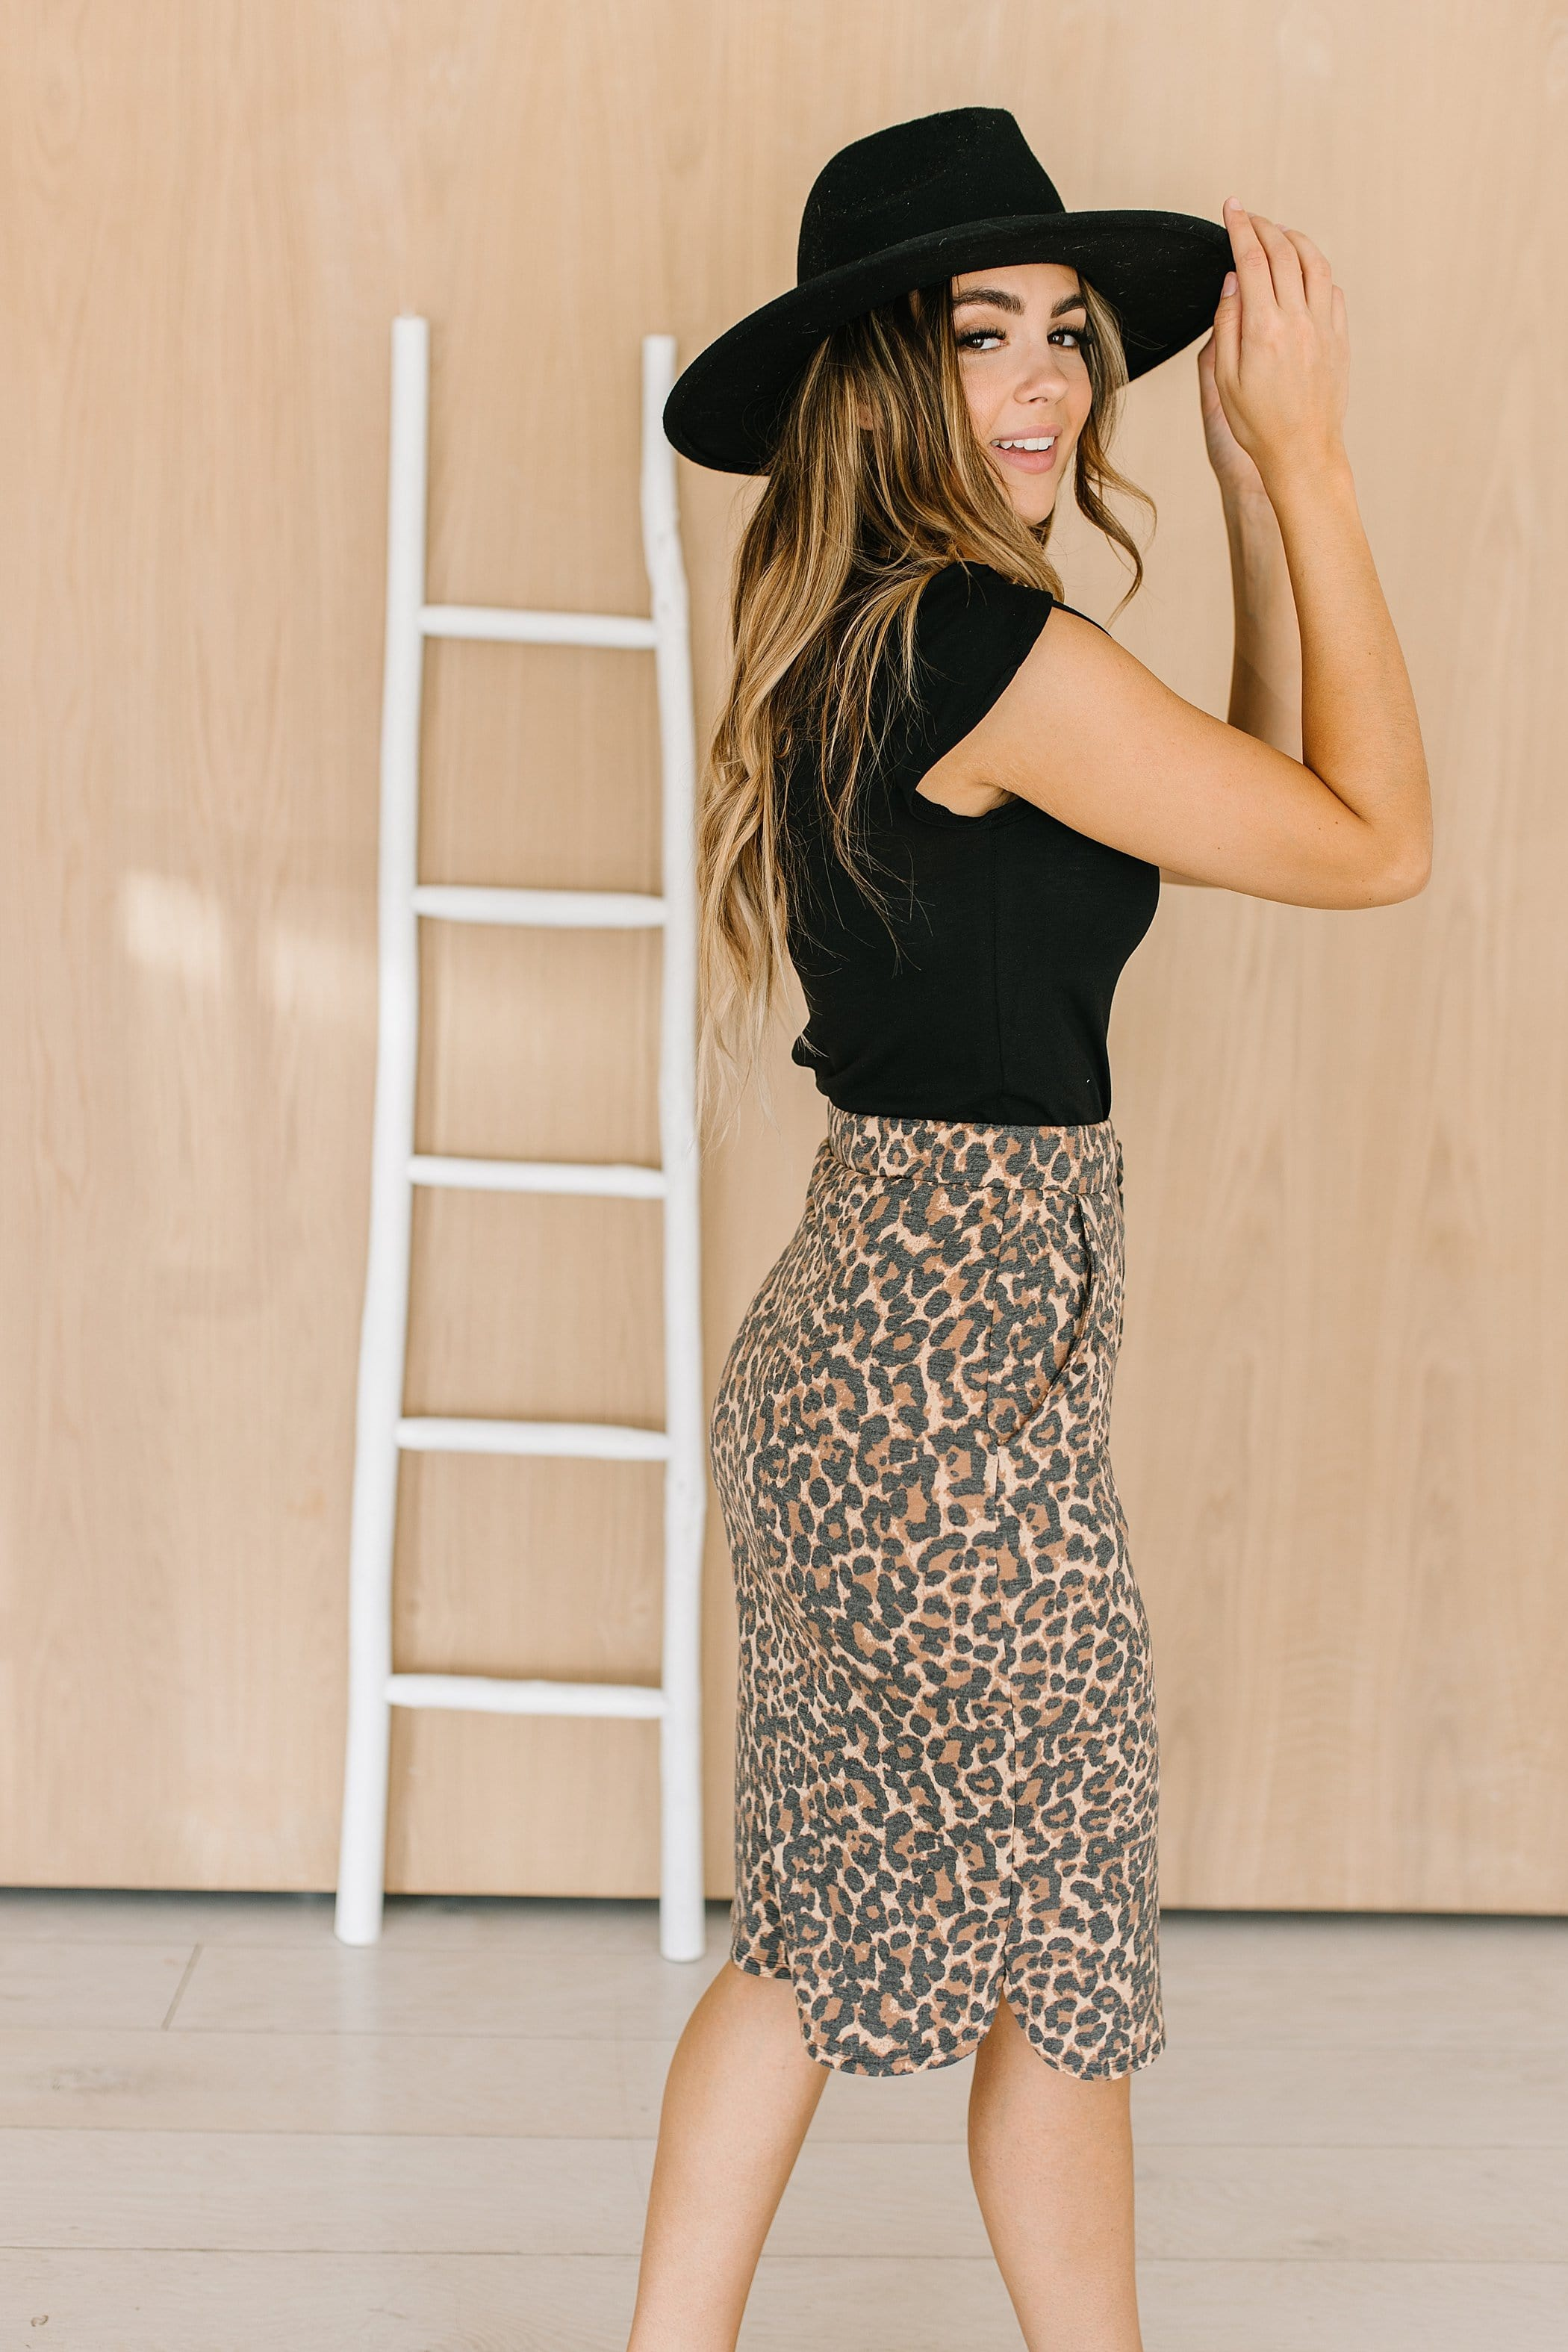 The Adana Drawstring Skirt in Animal Print